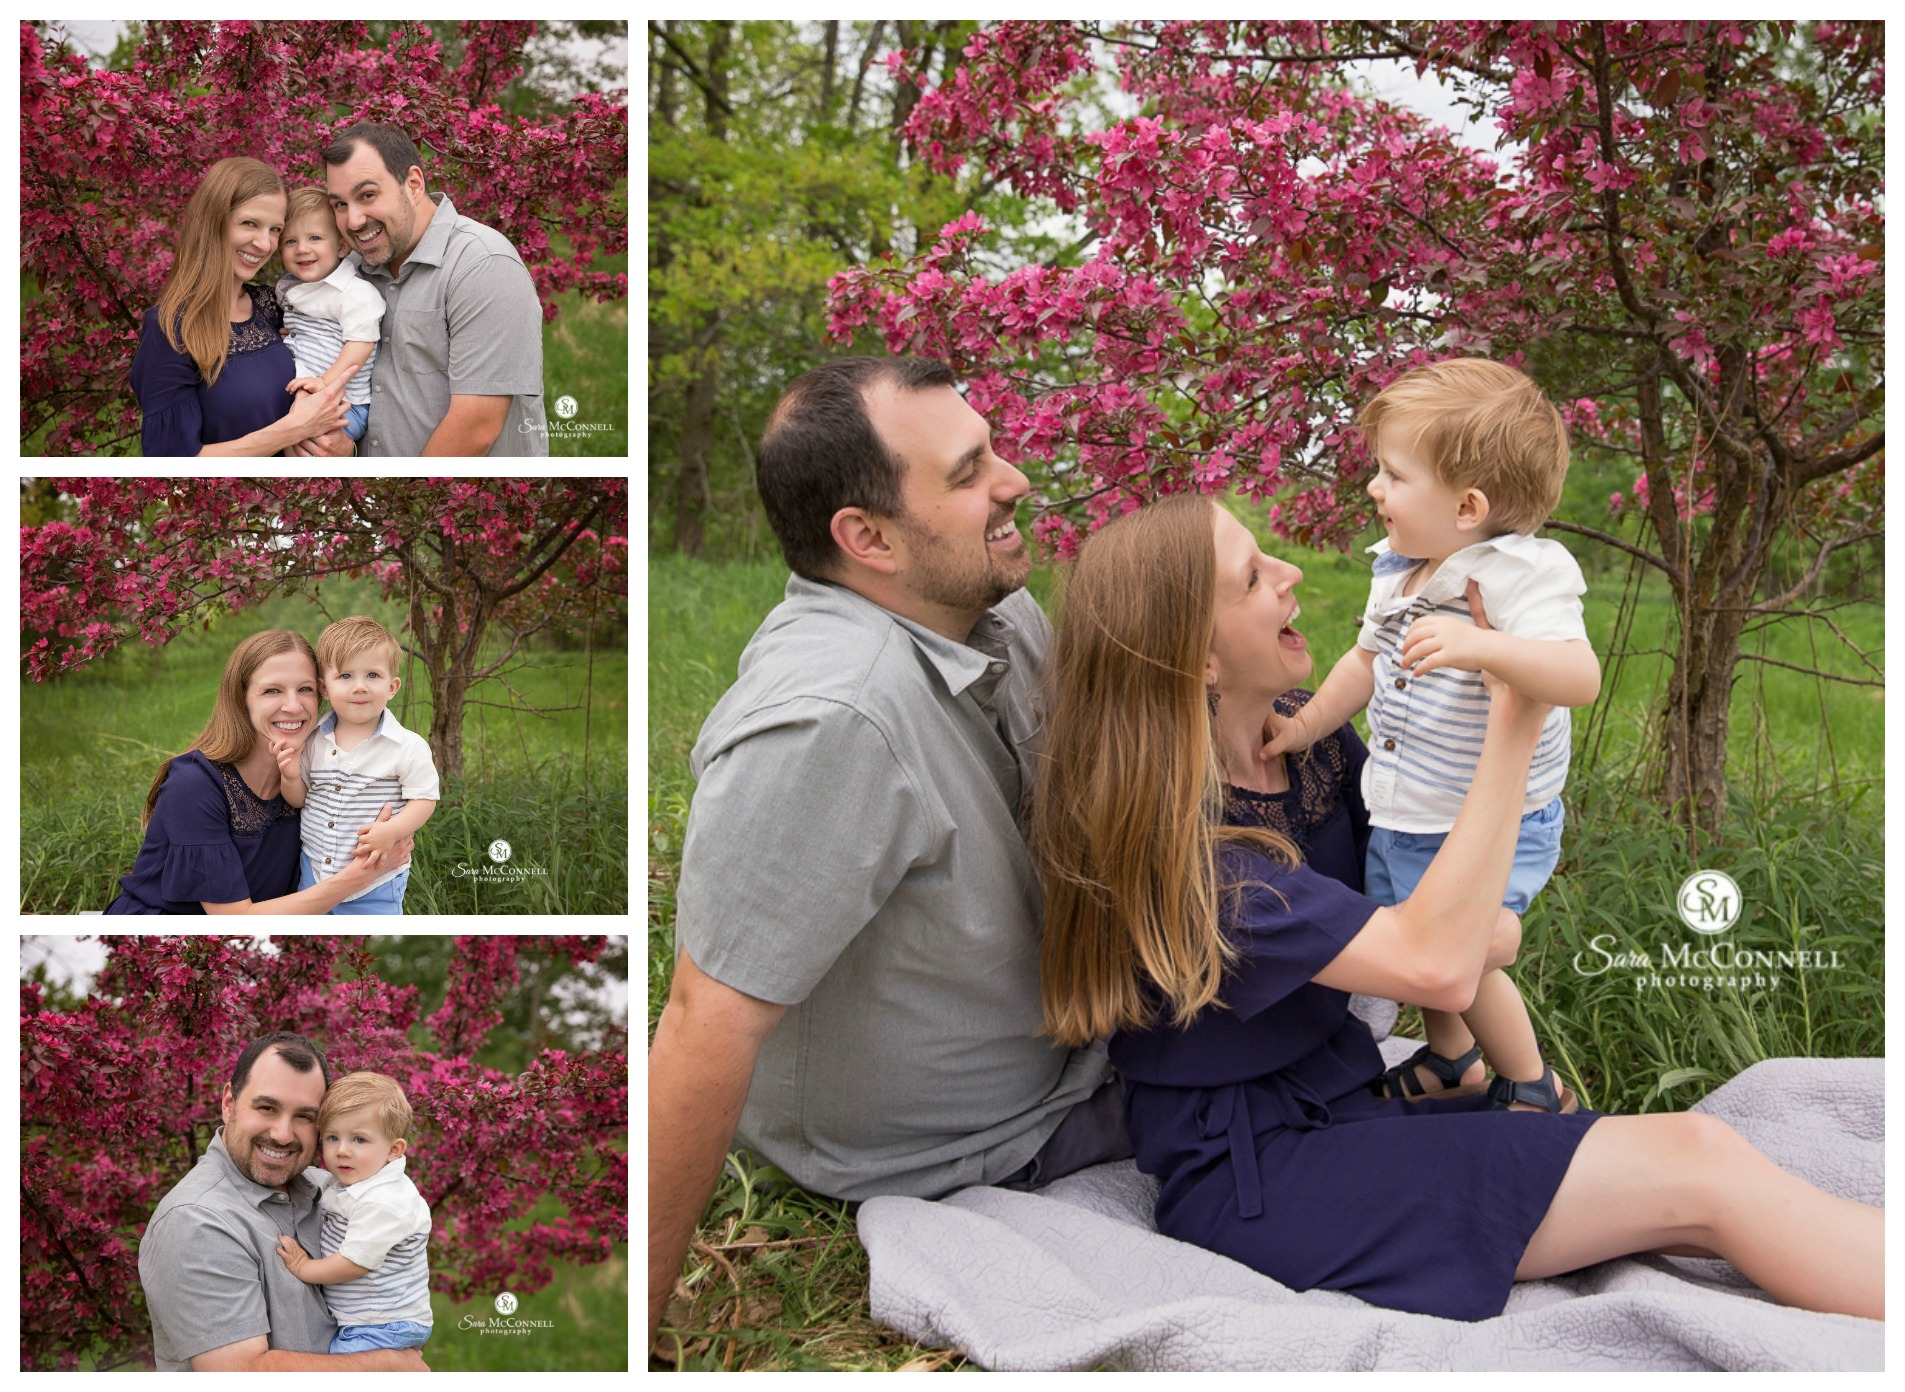 Ottawa Spring Blossom Photo Sessions by Sara McConnell Photography